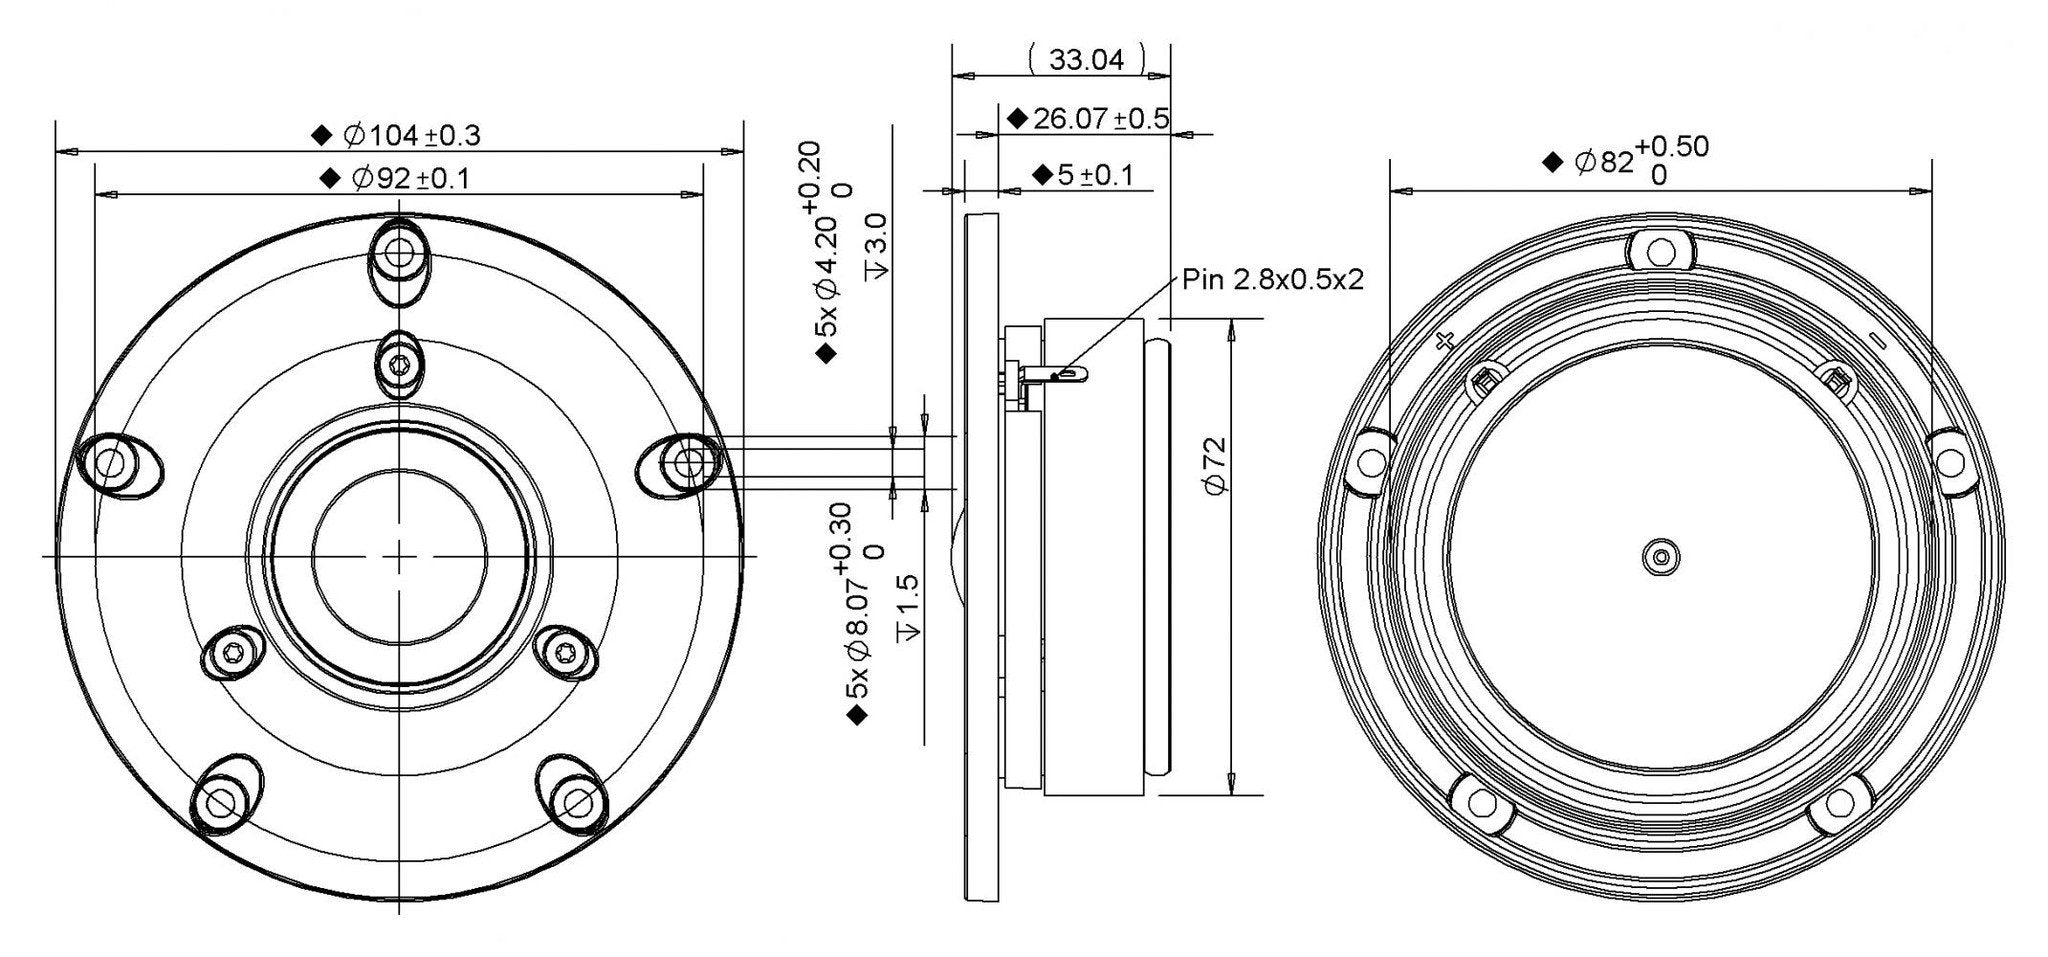 Peerless Dx25tg59 04 Tweeter Willys Hifi Ltd M Audio Bx5a Circuit Diagram Dimensions